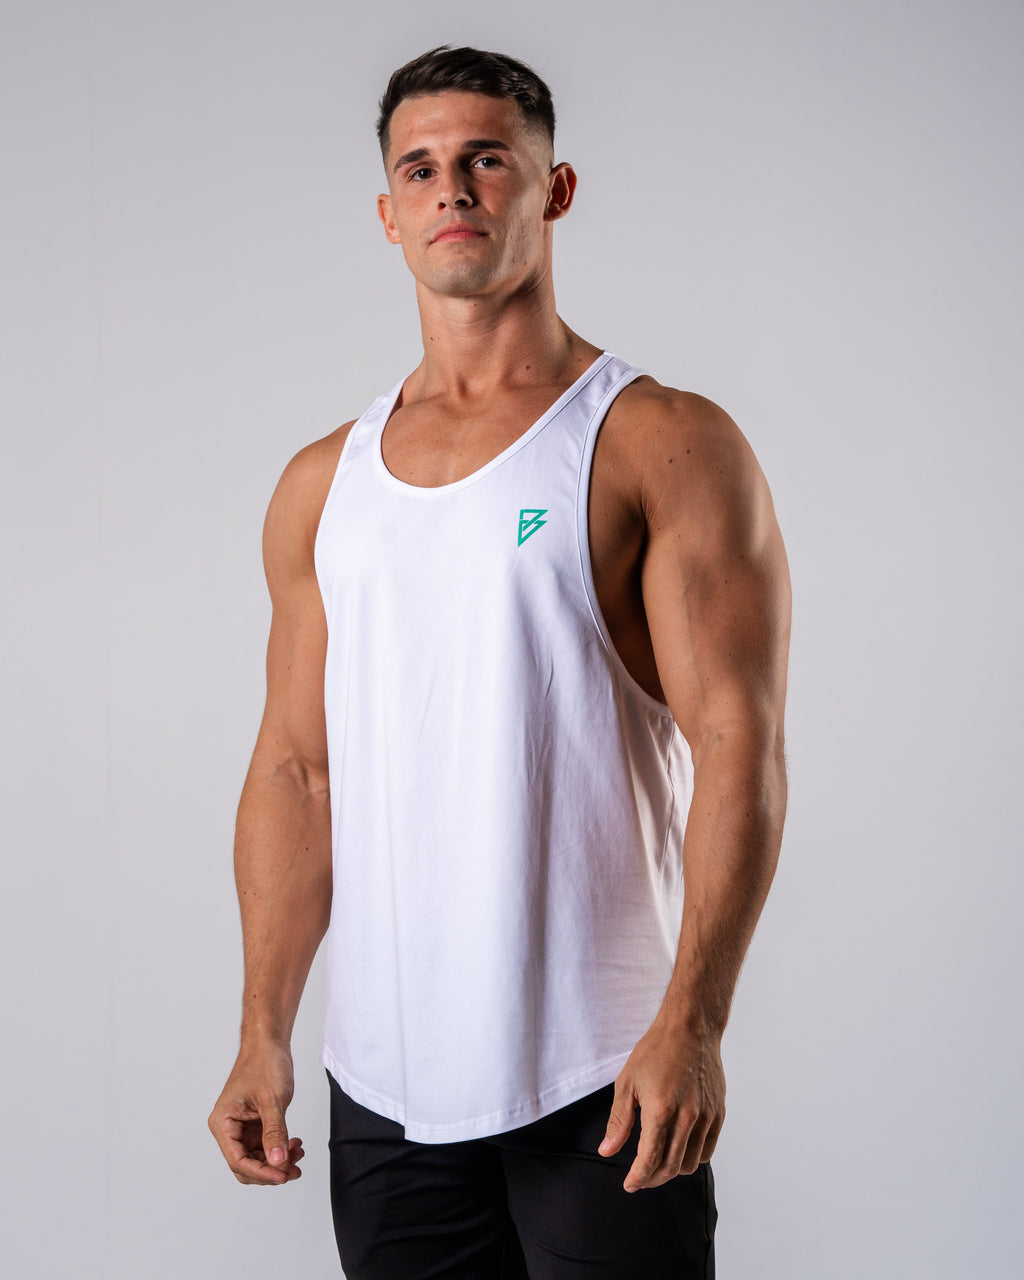 Inspire Cutoff - White - FIO Athletics